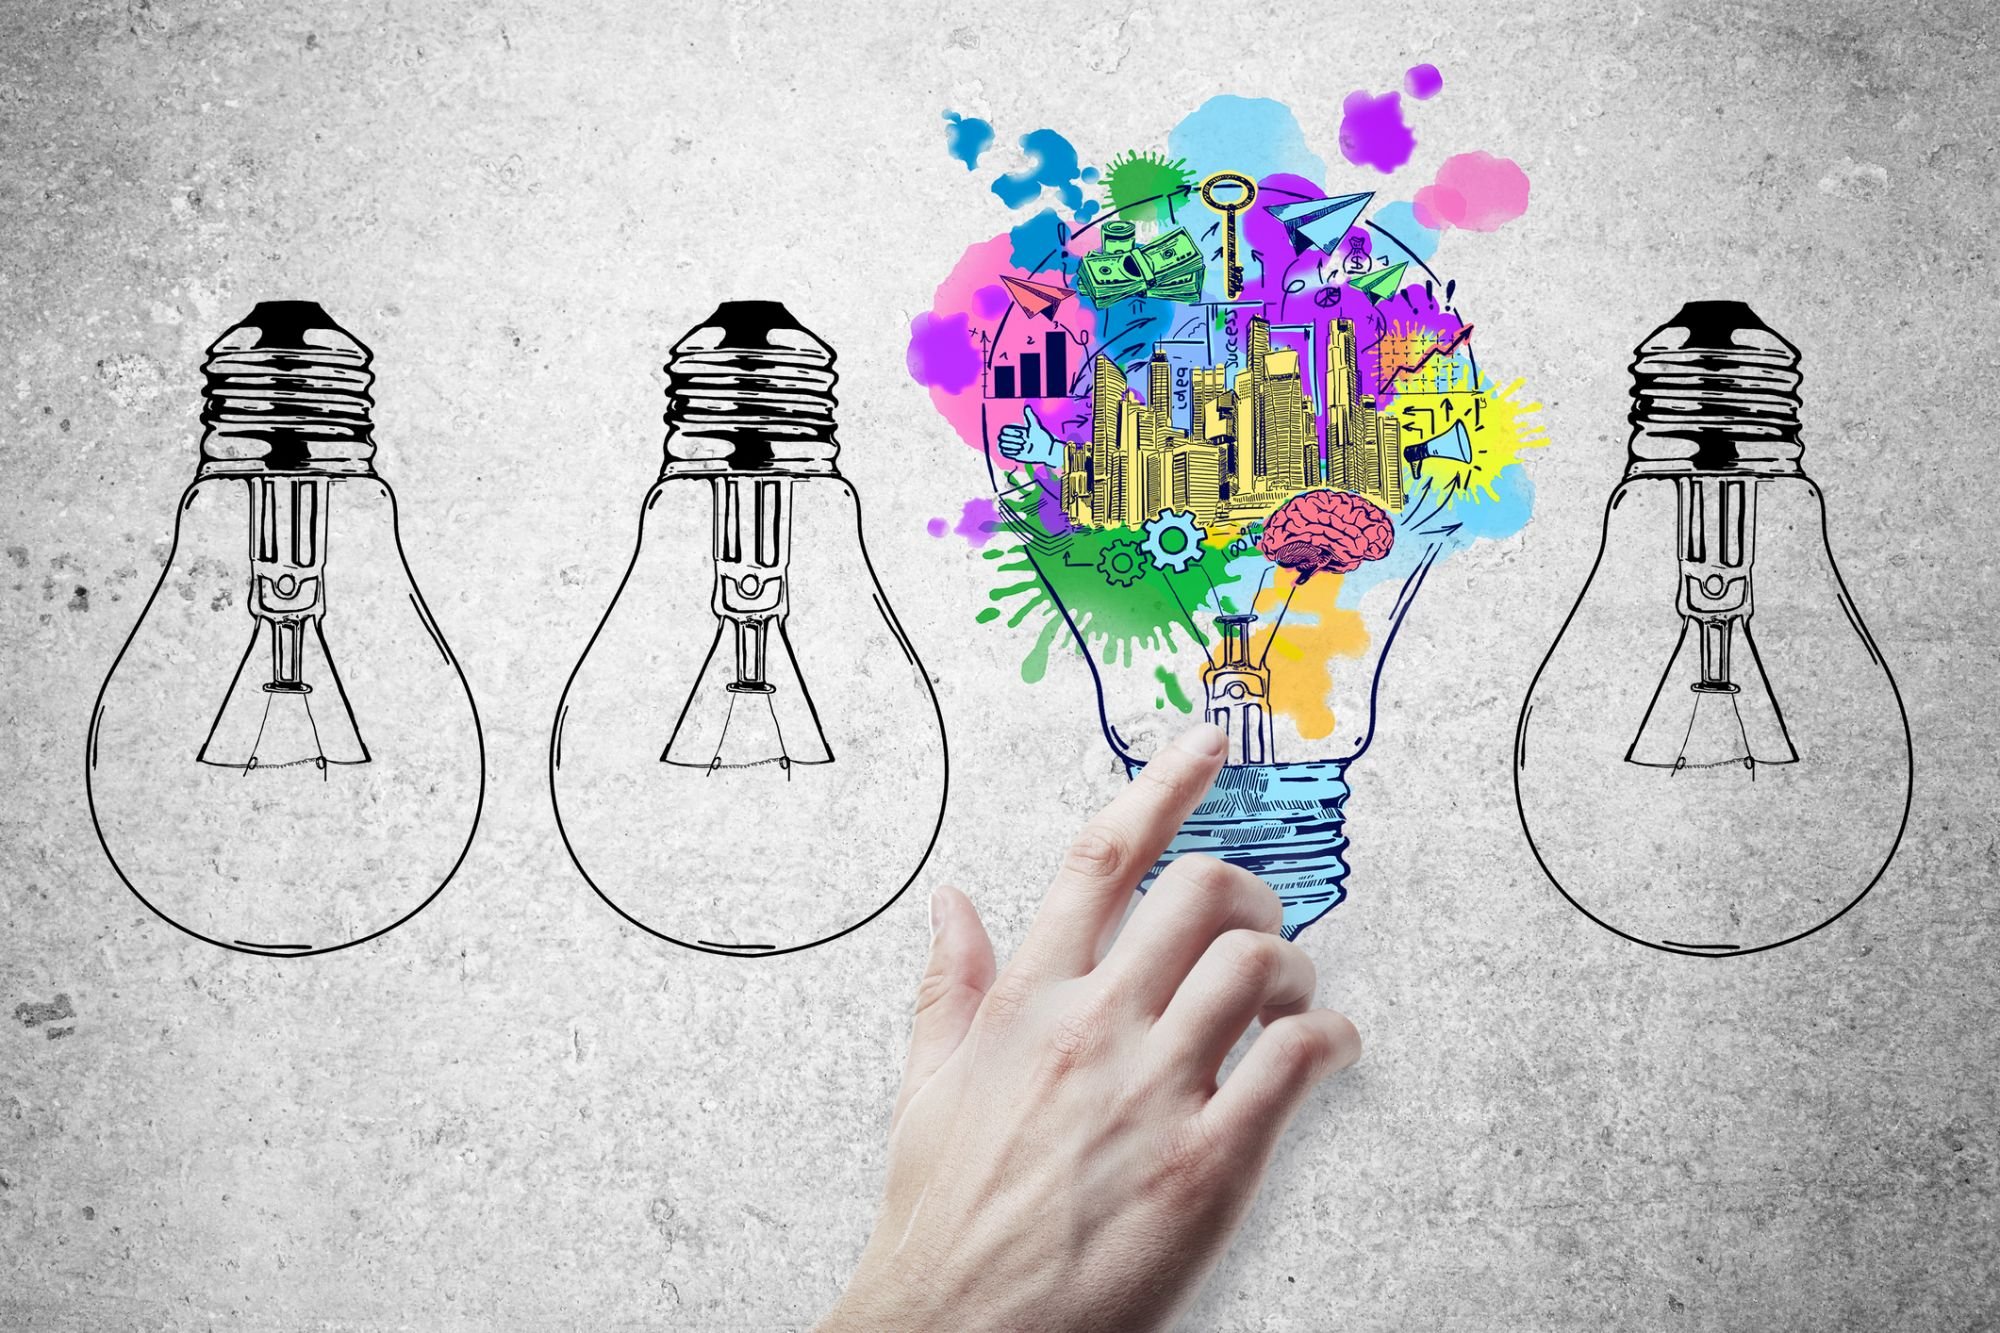 9 Ways Your Company Can Encourage Innovation